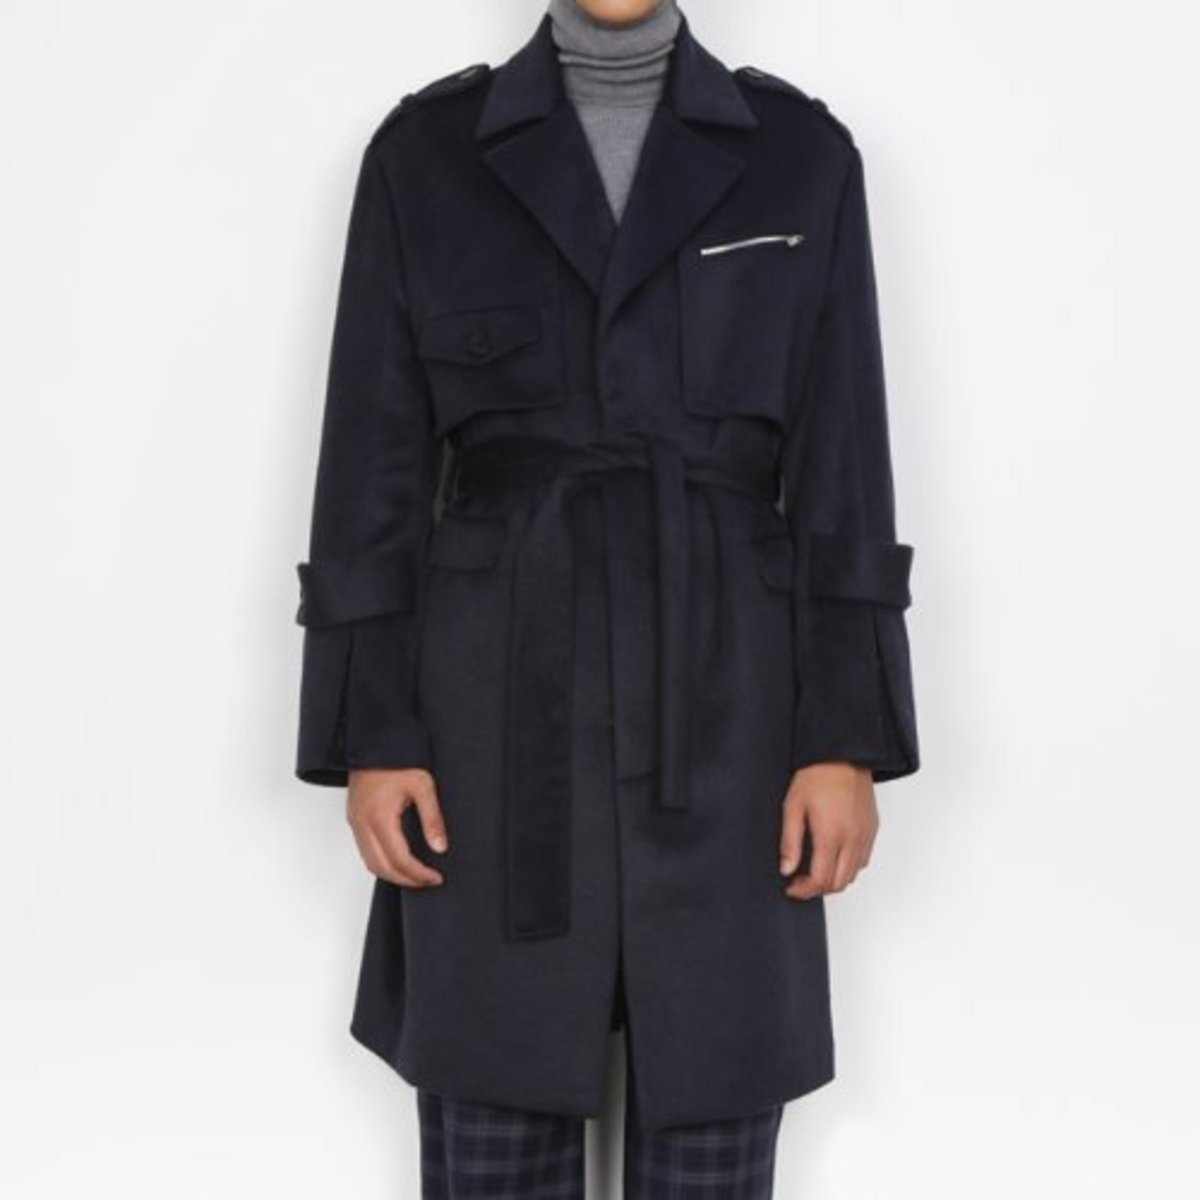 NAVY PLACKET WOOL CASHMERE COAT